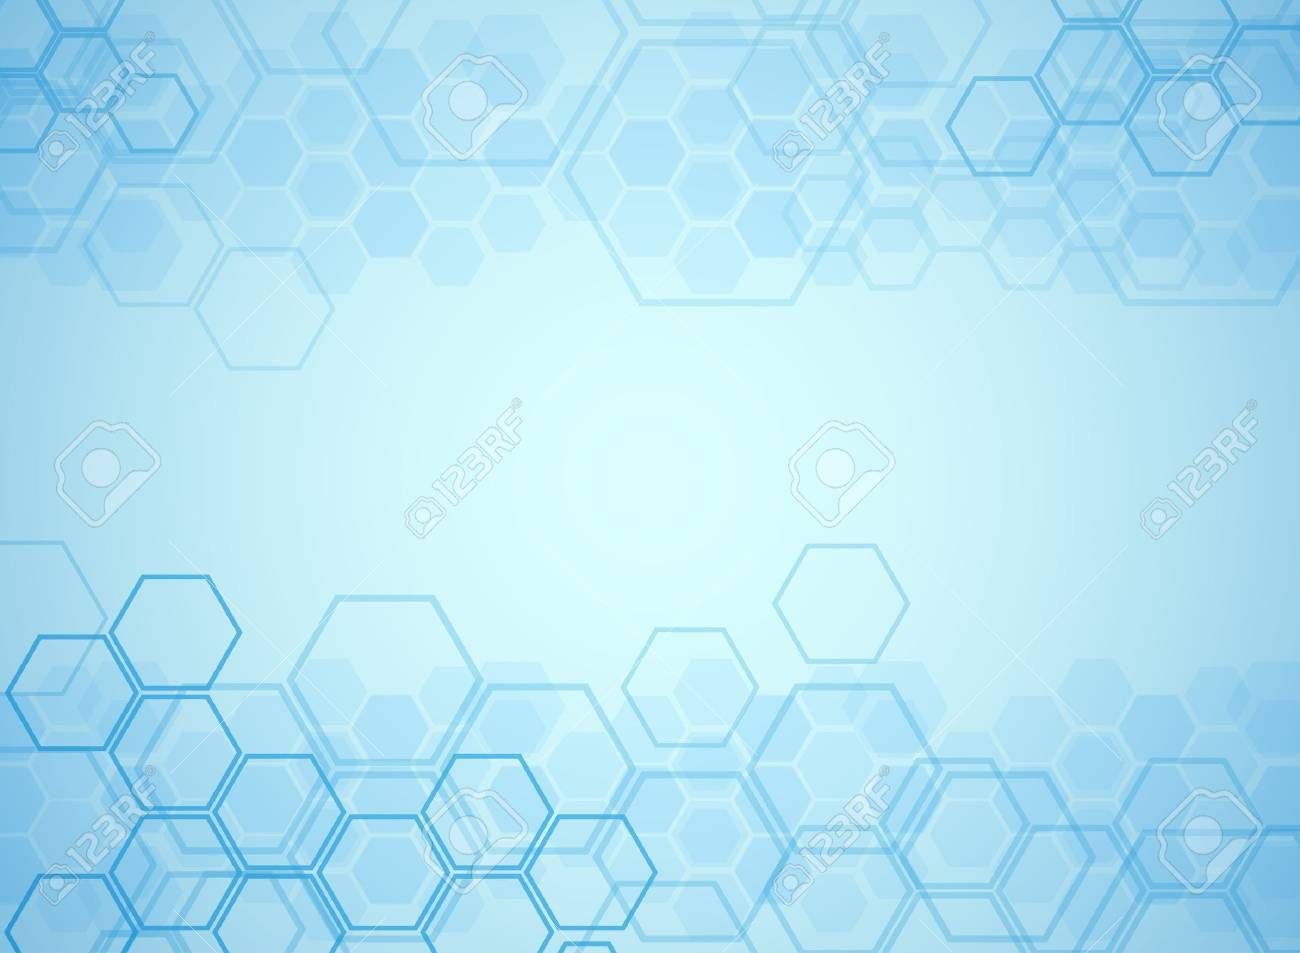 Abstract molecules medical background - 39538157